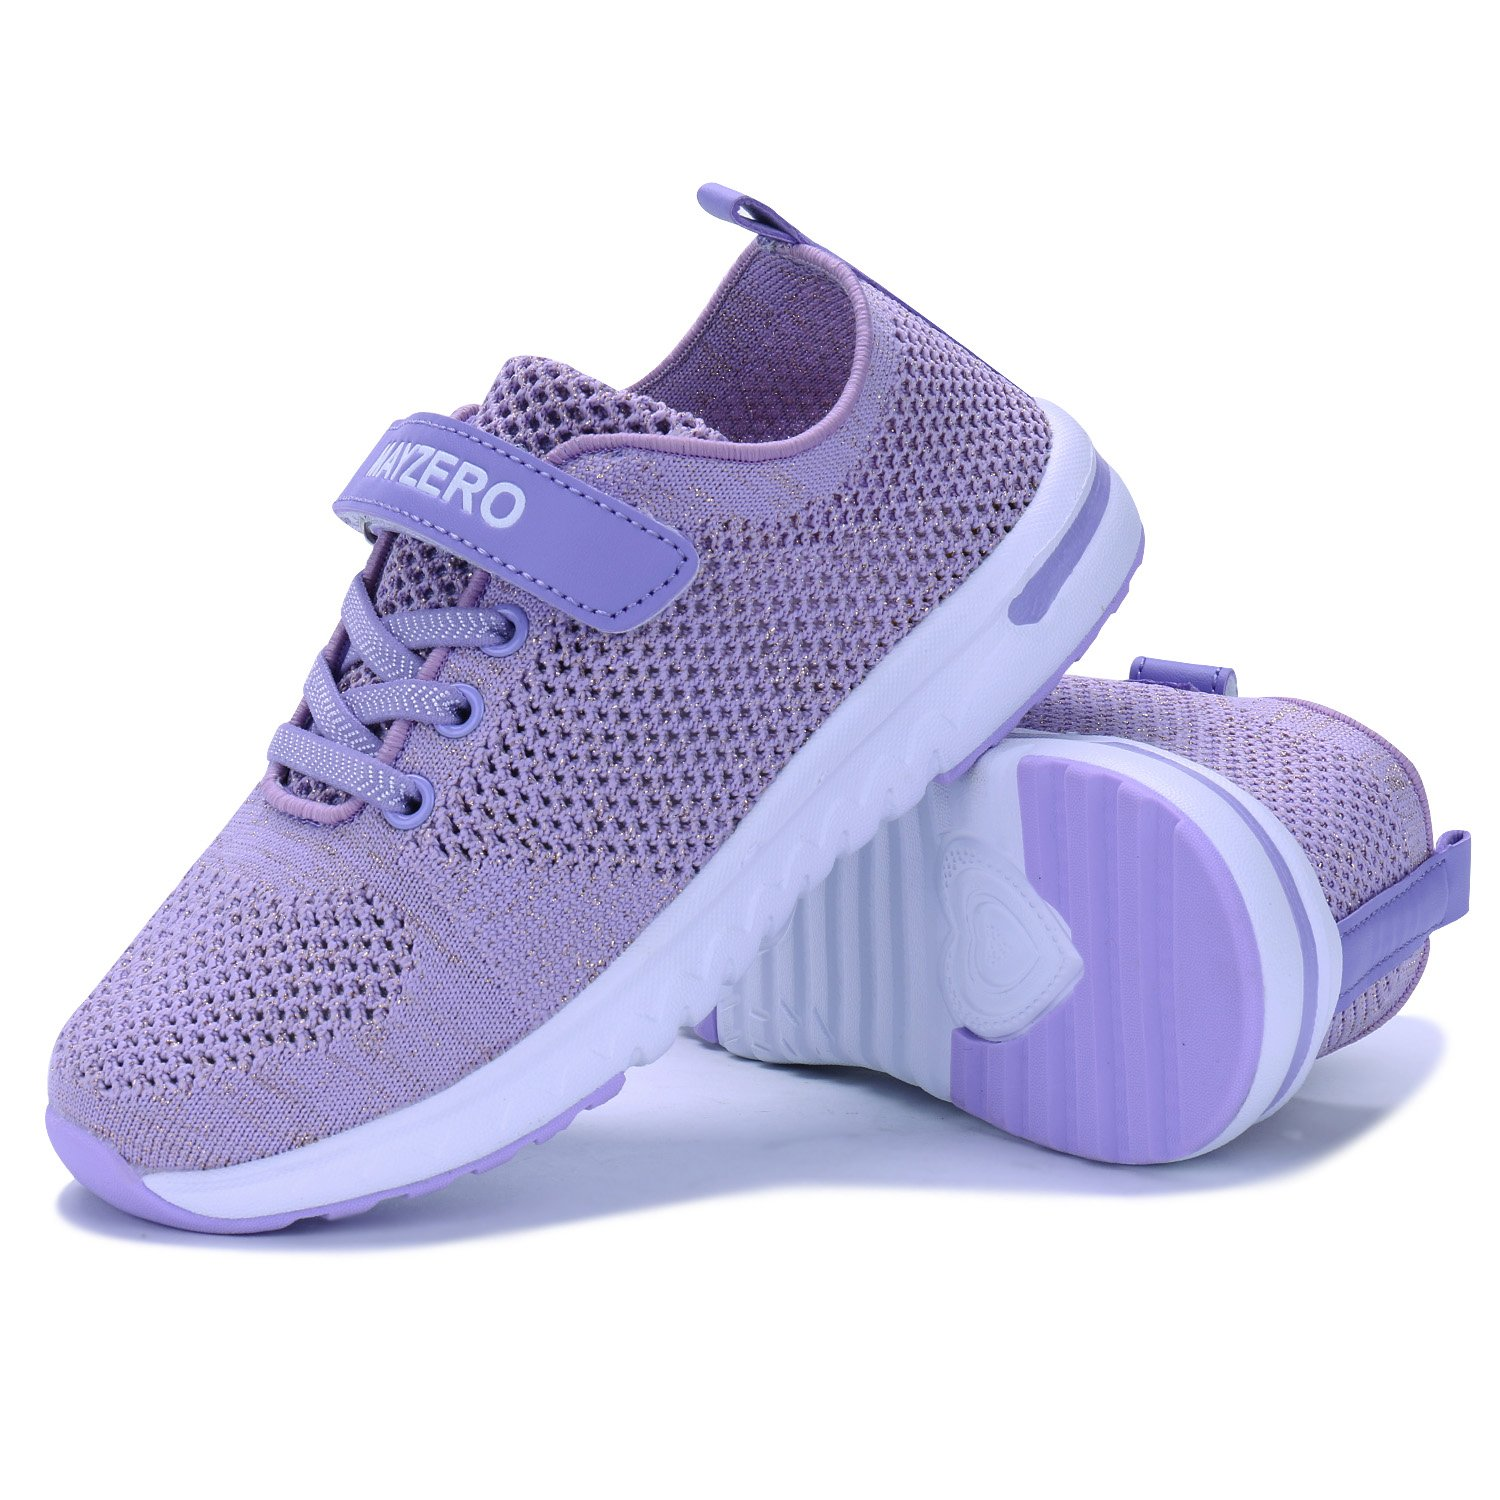 quality design 16f89 d1a7c Kids Lightweight Walking Sneakers Casual Running Shoes for Boys and Girls (Little  Kid Big Kid)  Amazon.ca  Shoes   Handbags